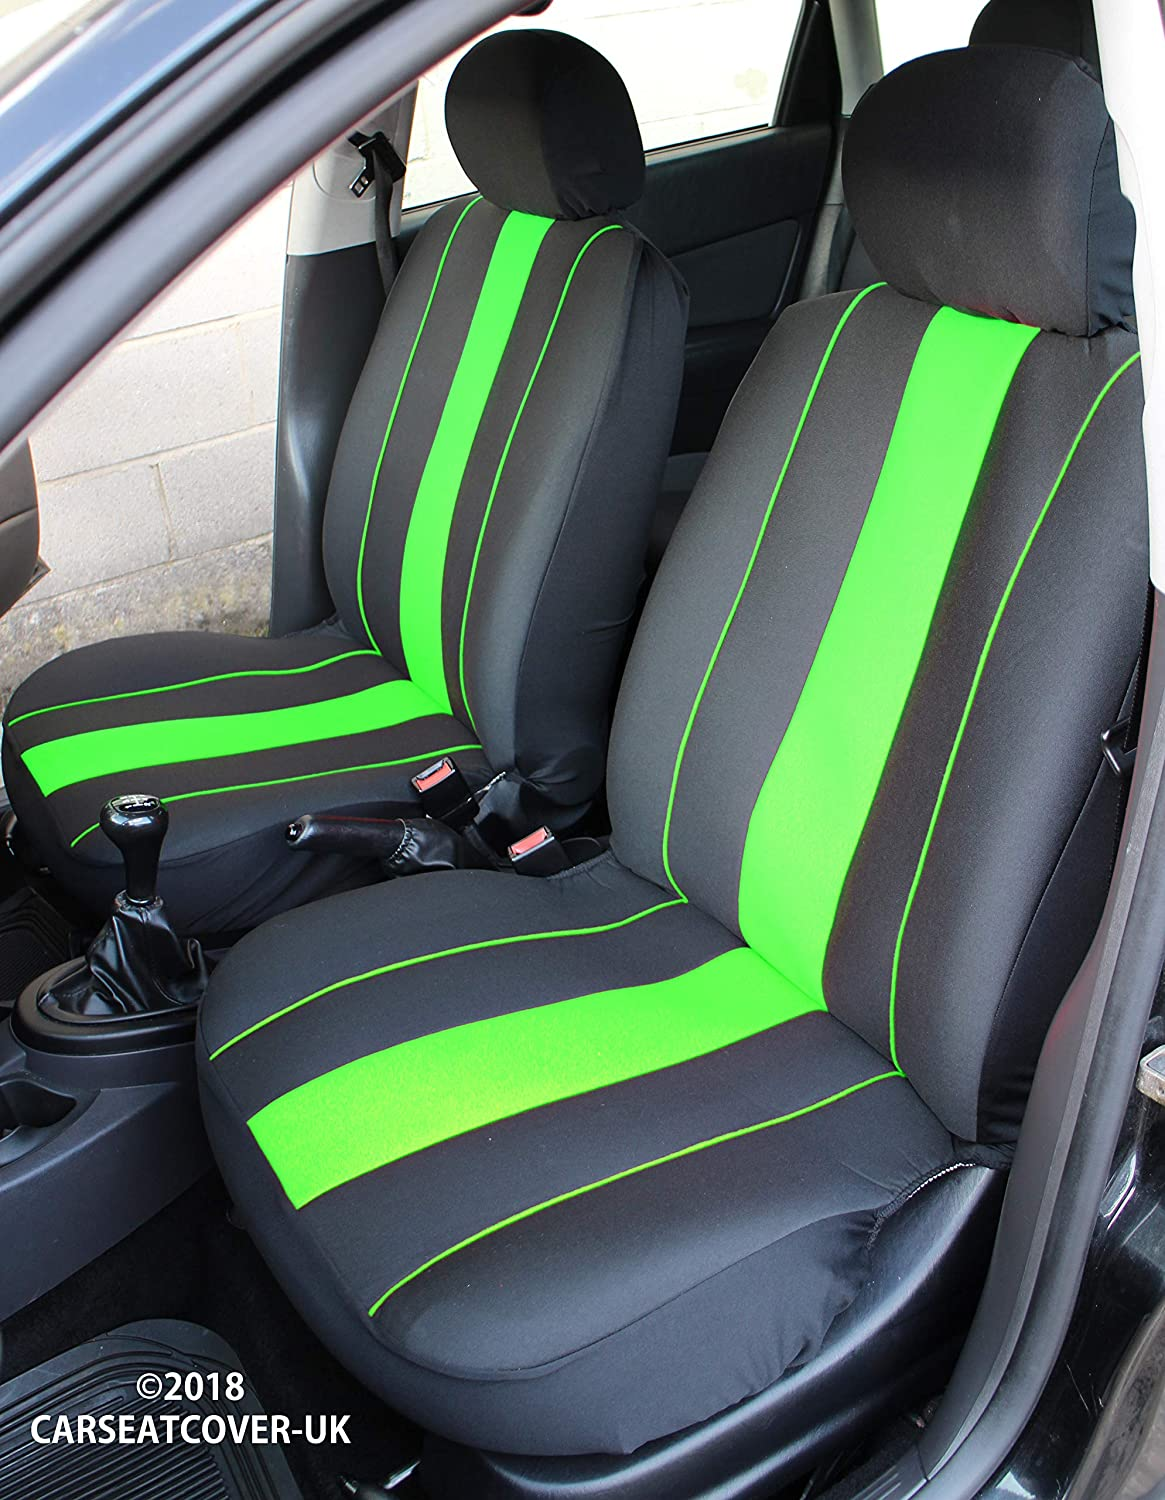 Carseatcover-UK/® Front Pair of SPEEDSTER Blue FABRIC Car Van Seat Covers